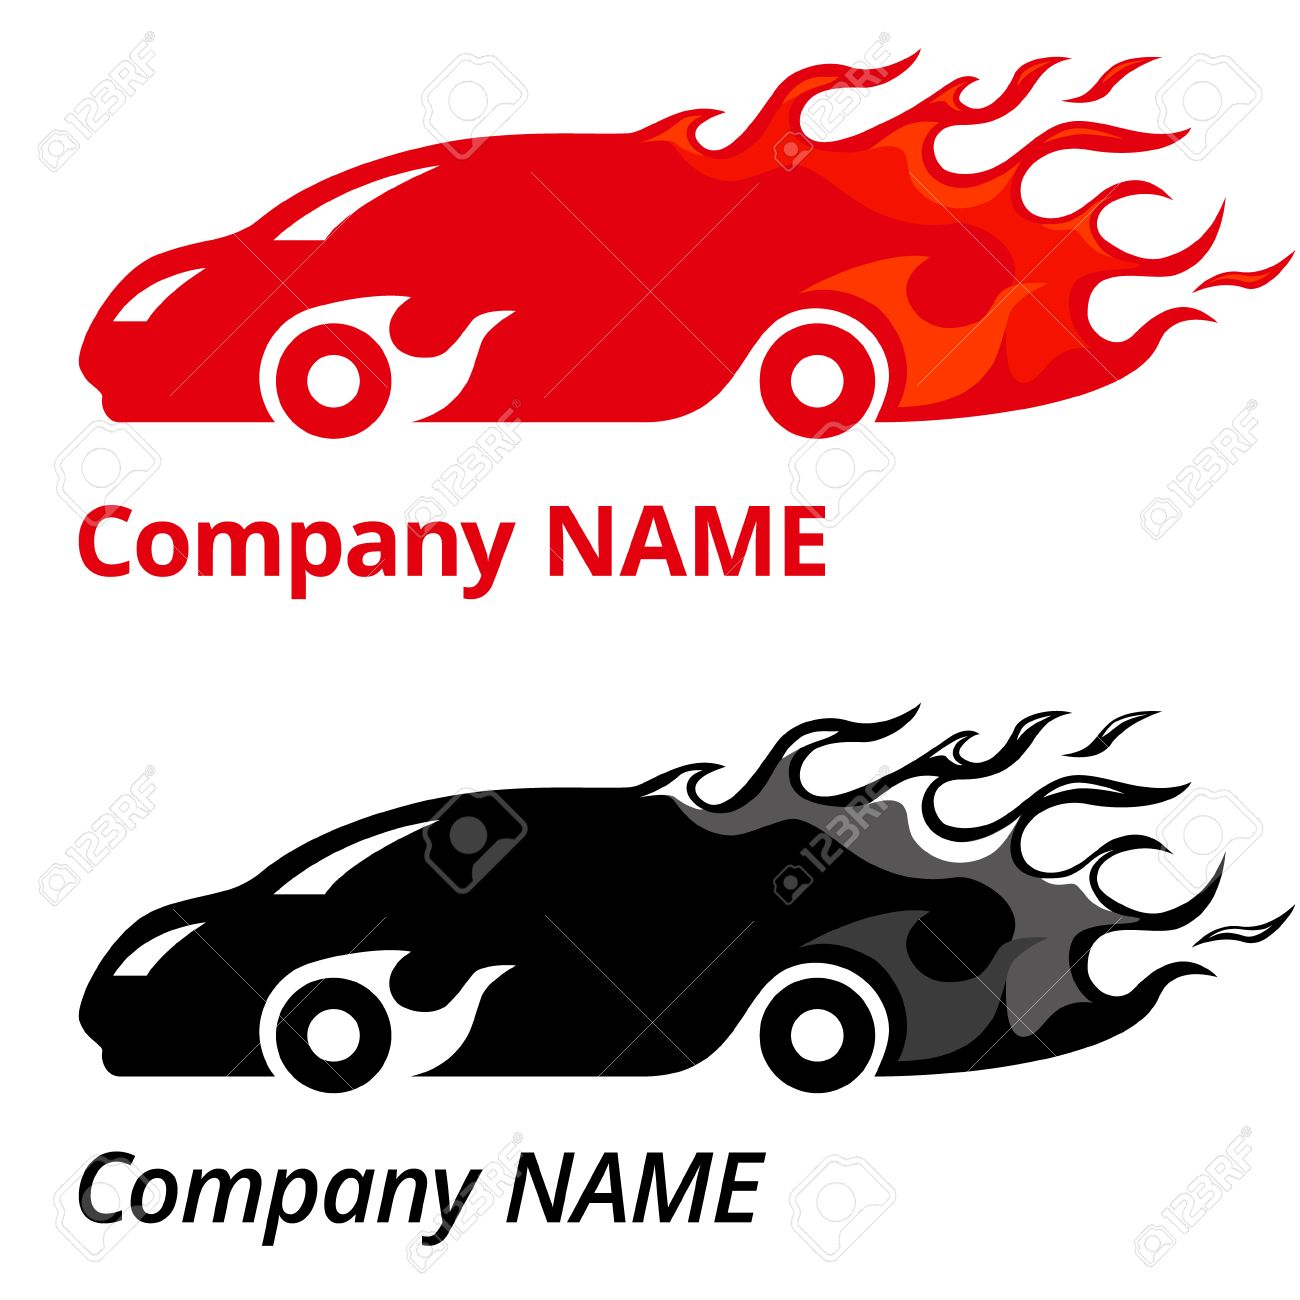 Vector Illustration Of Red Sport Car With Flames Company Name